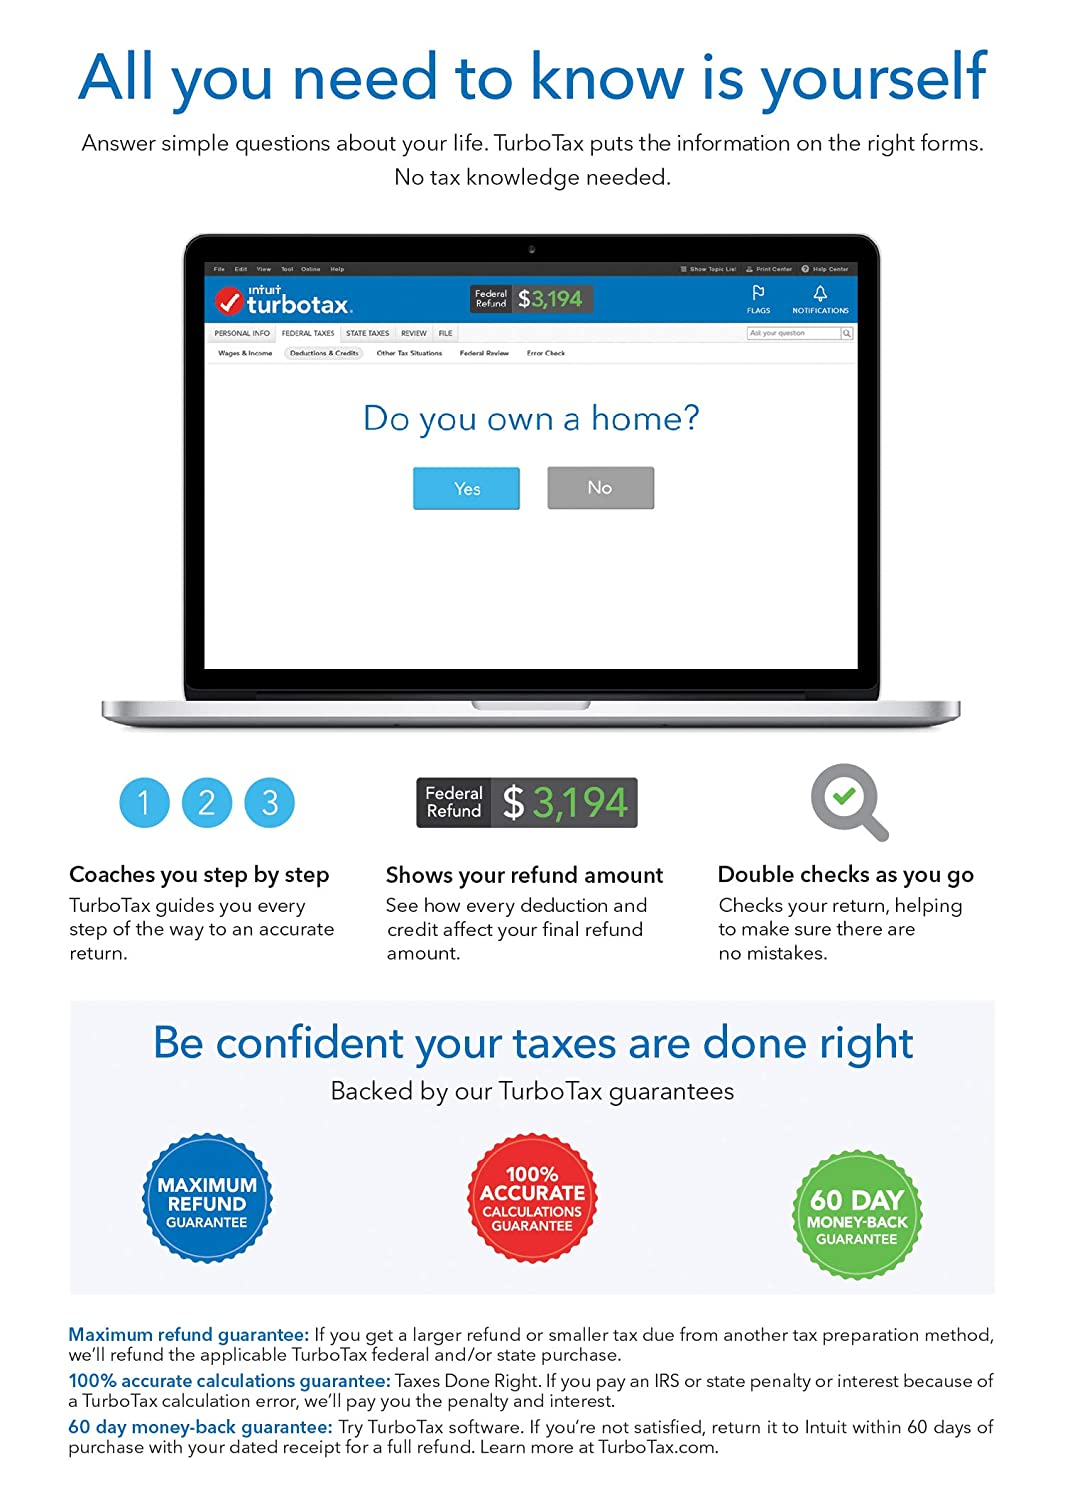 Turbo tax, all you need is yourself and the software